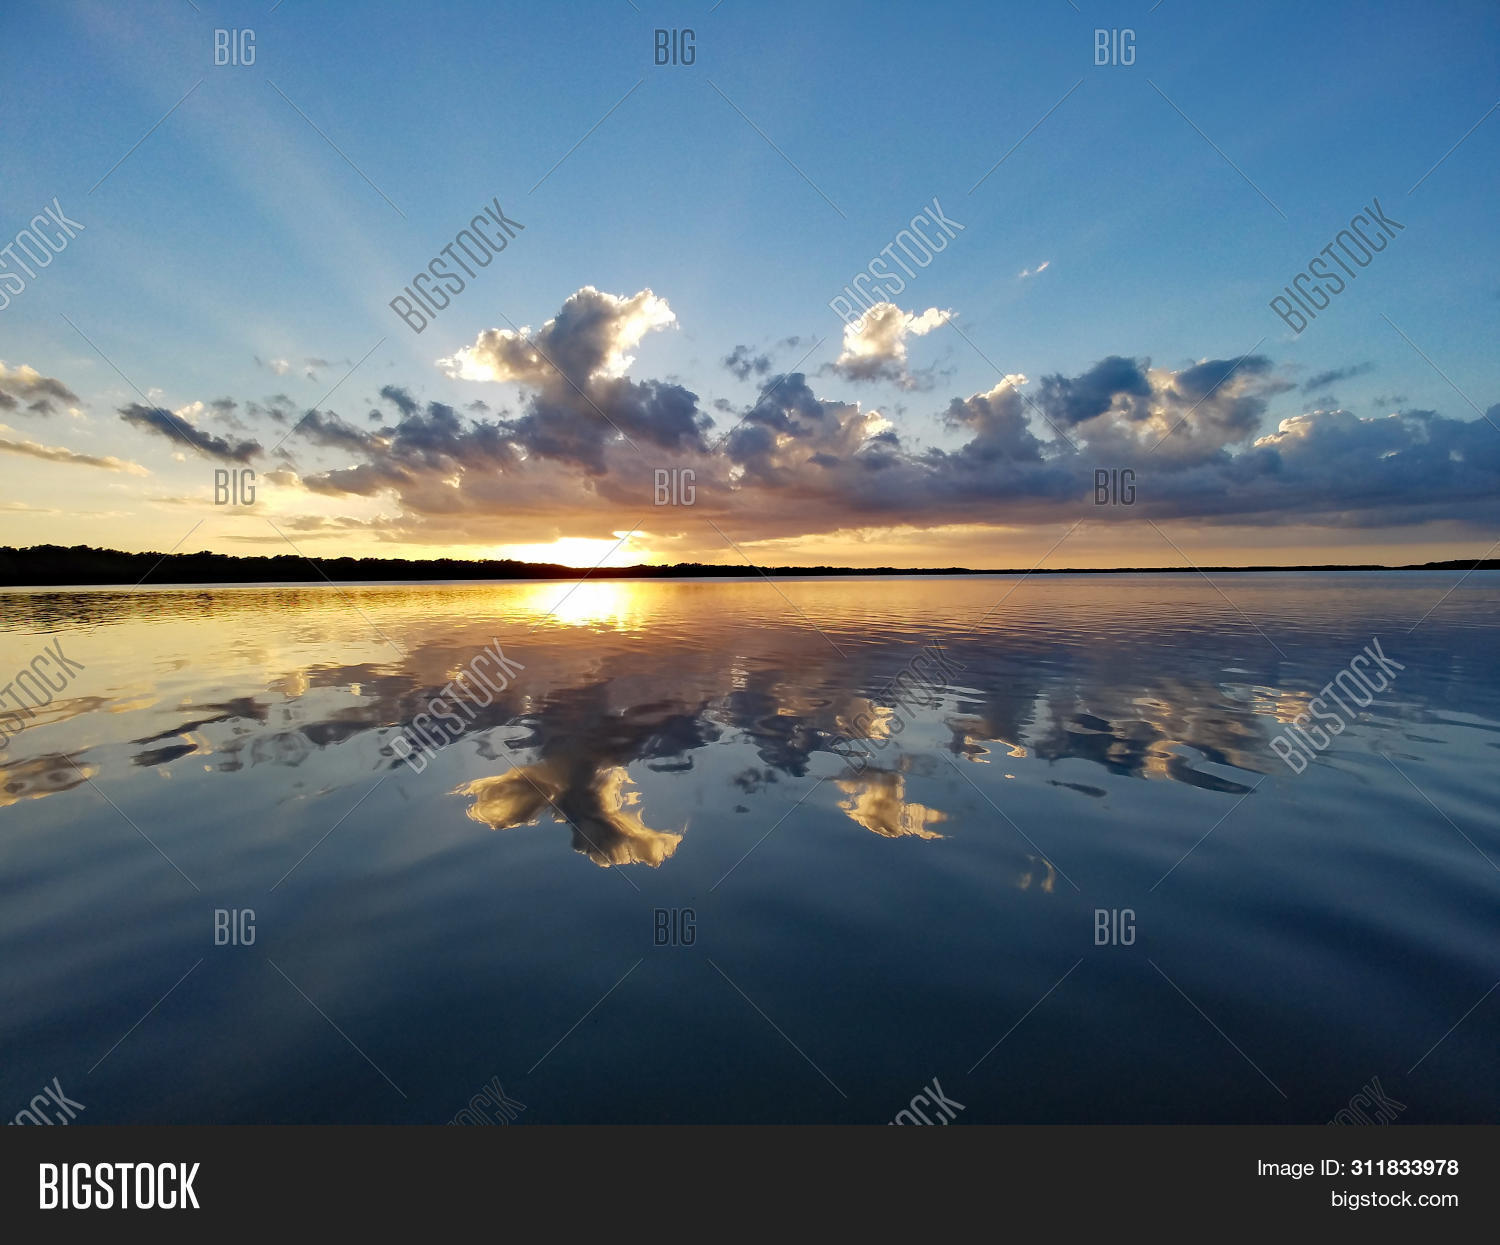 afternoon,backcountry,bay,cloud,cloudscape,coot,evening,everglades,in,kayaking,national,nature,park,pristine,reflections,serenity,sky,sunset,tranquility,water,wilderness